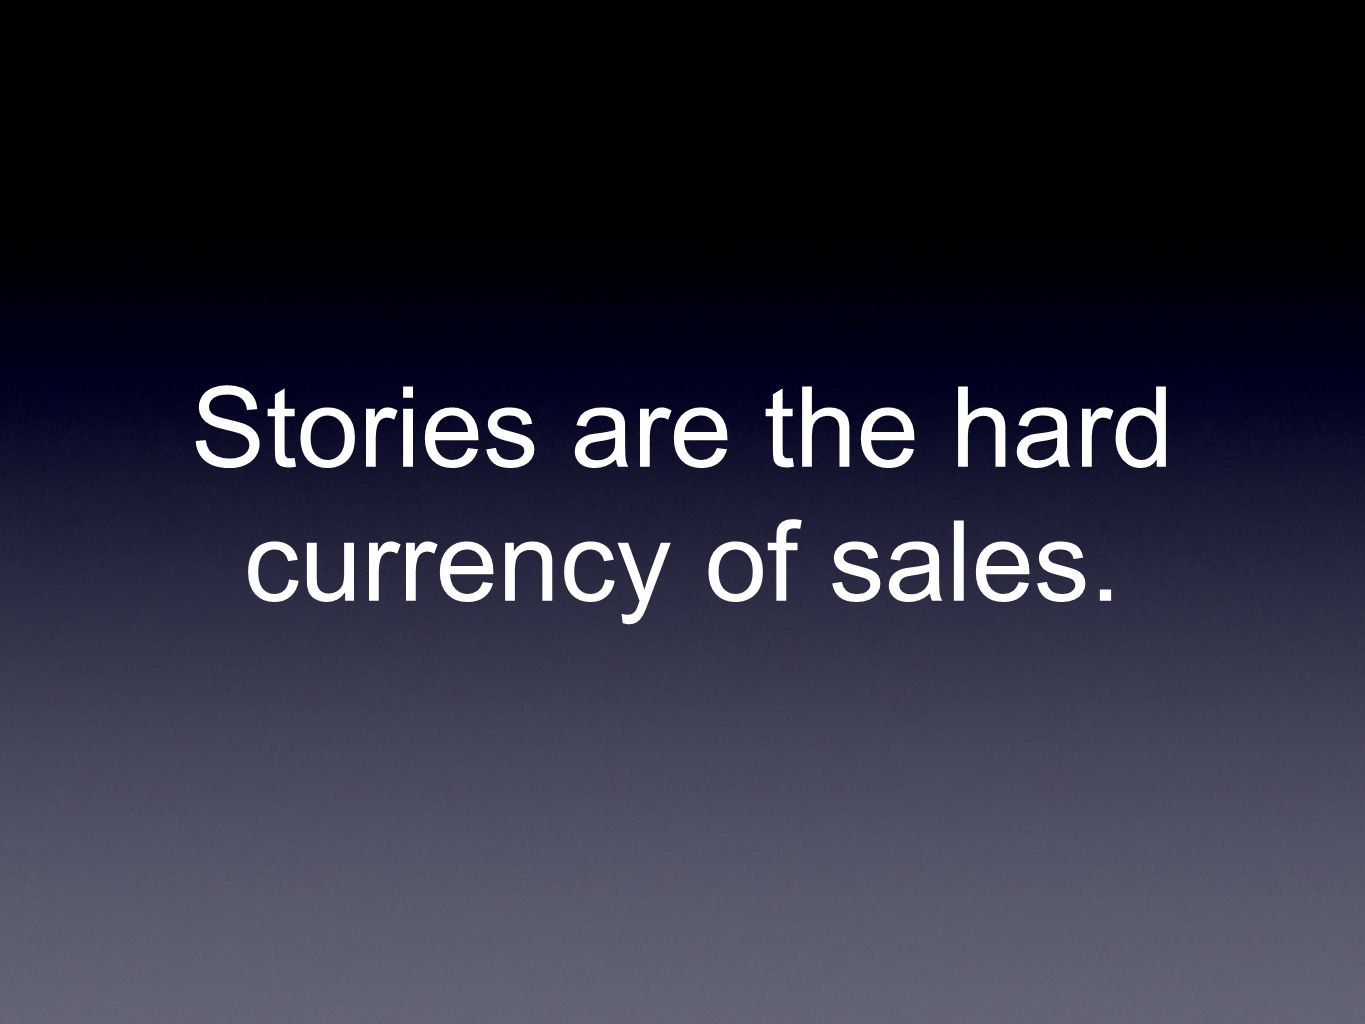 Stories are the hard currency of sales.